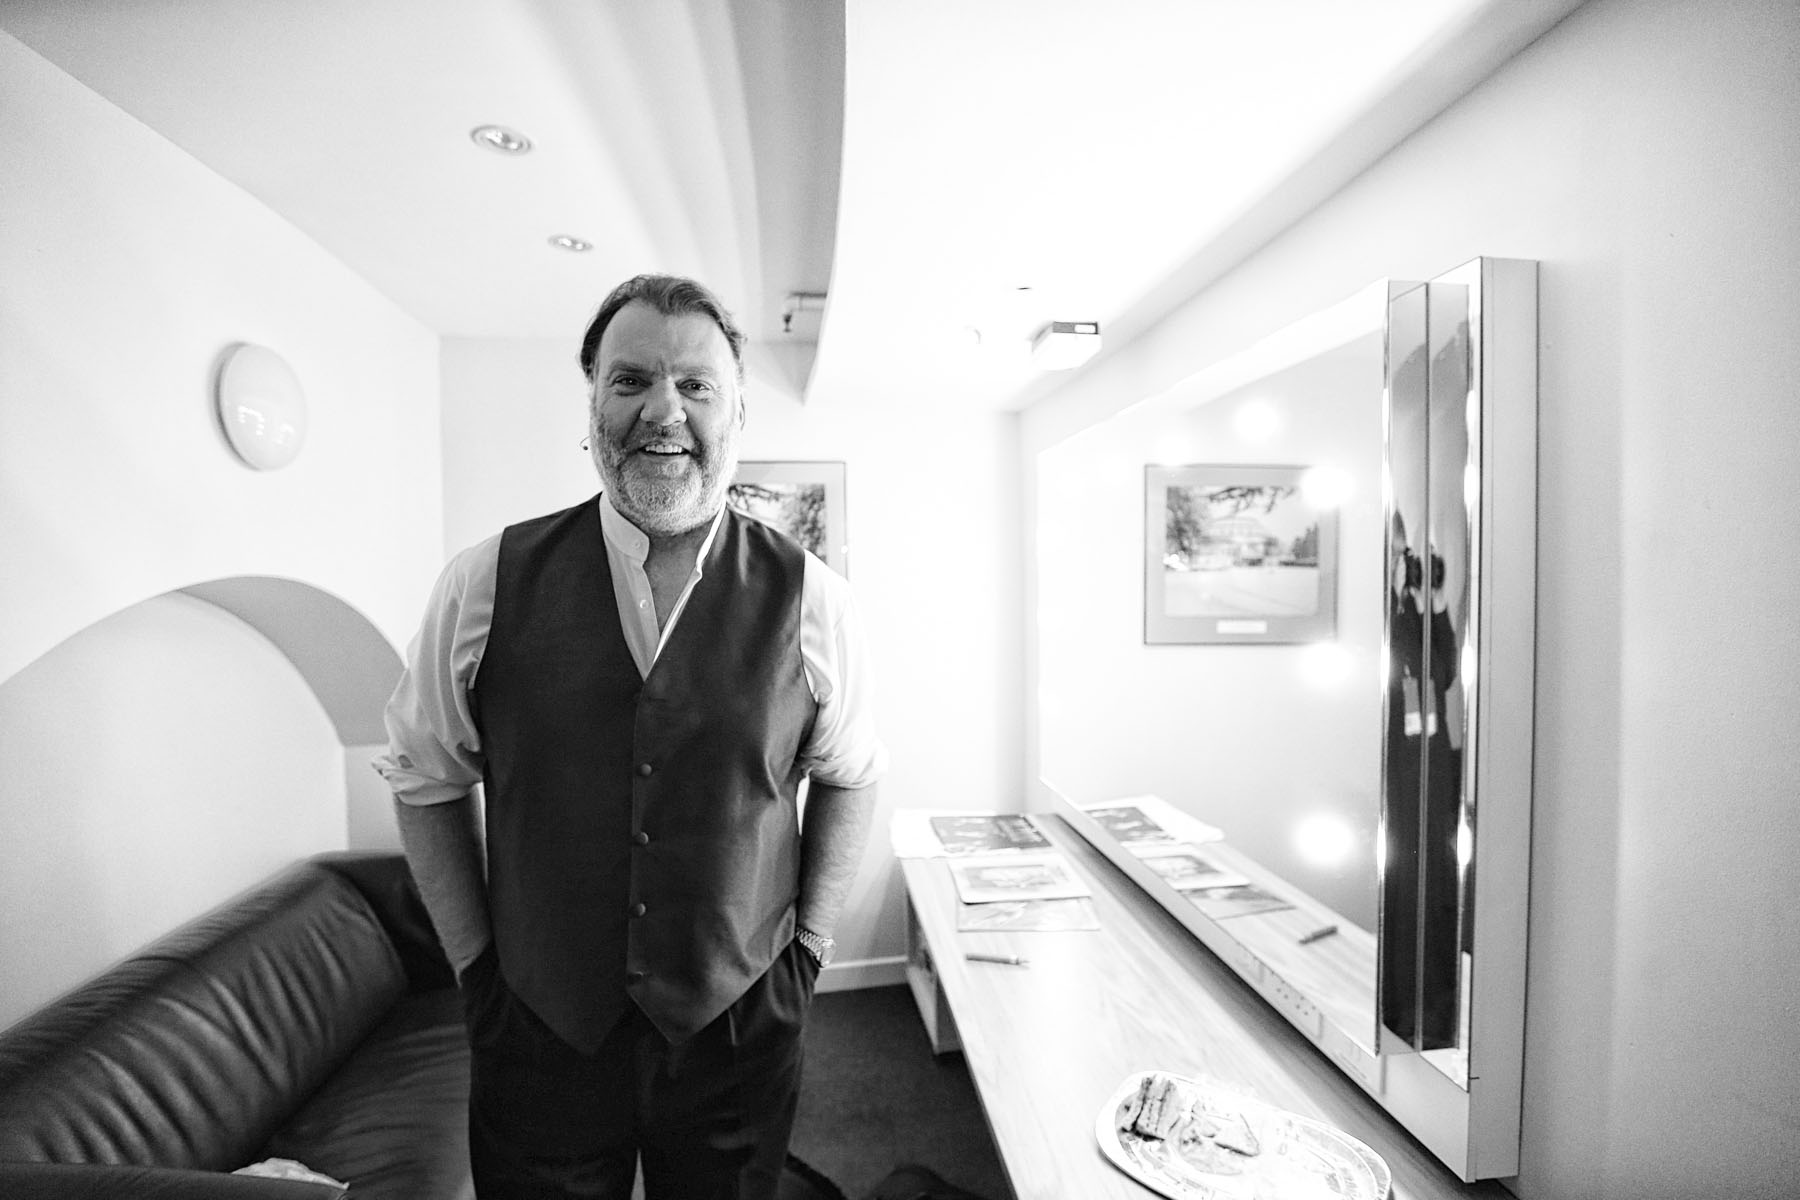 Bryn Terfel backstage at the Royal Albert Hall by Christie Goodwin